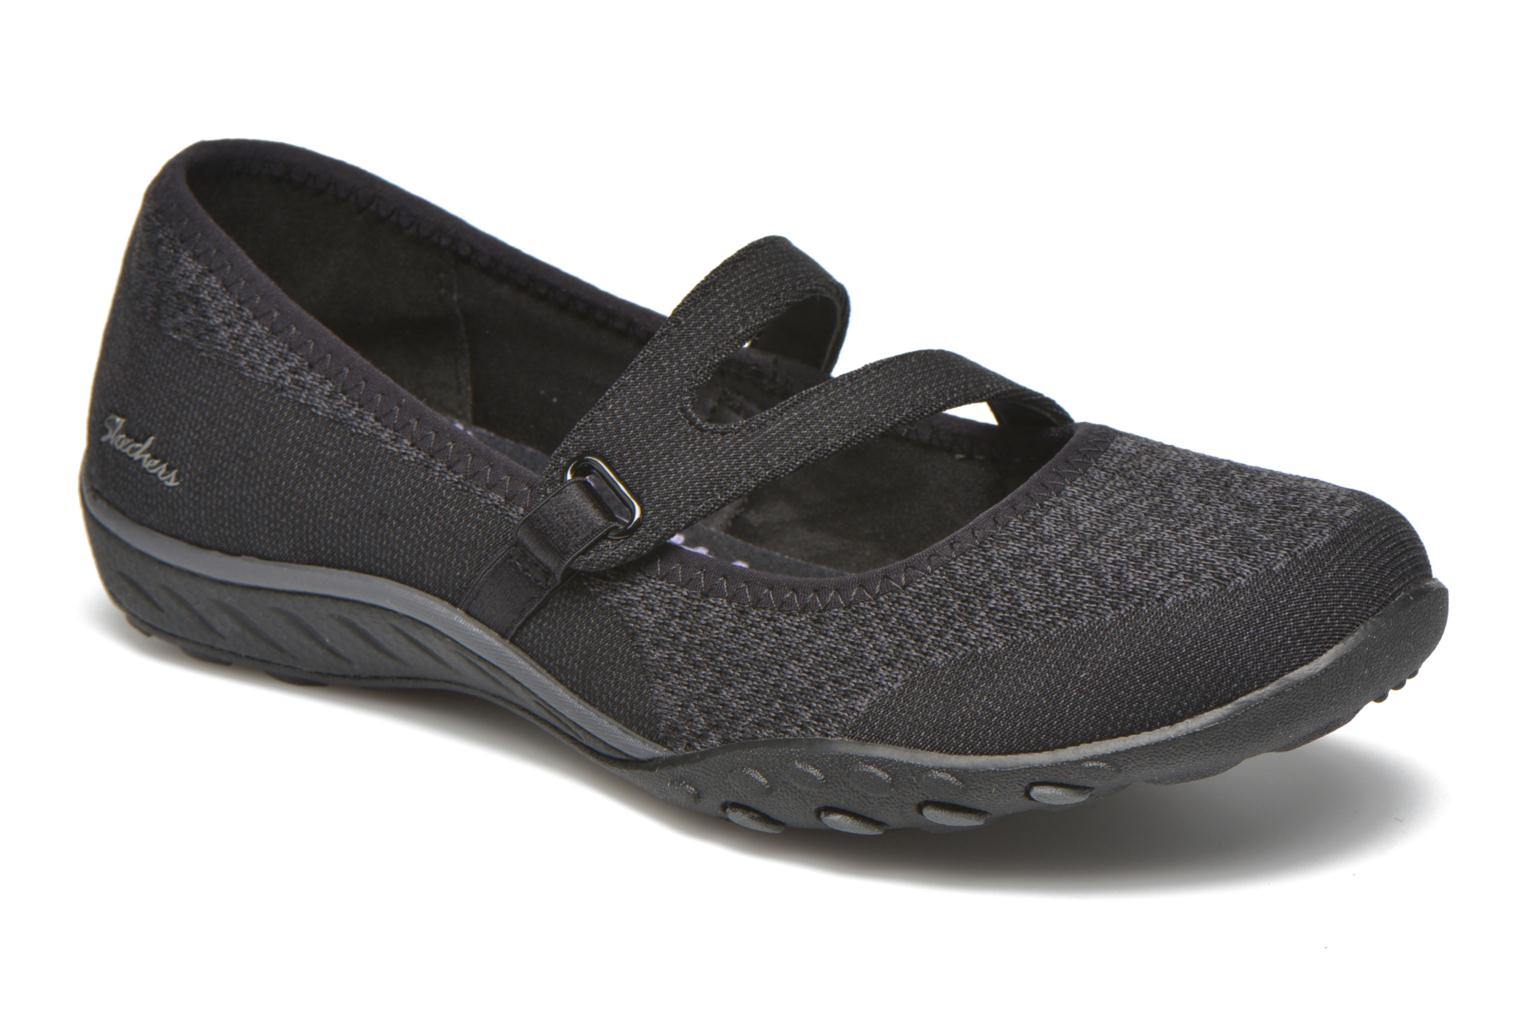 Bailarinas Skechers Breathe-Easy - Lucky Negro vista de detalle / par